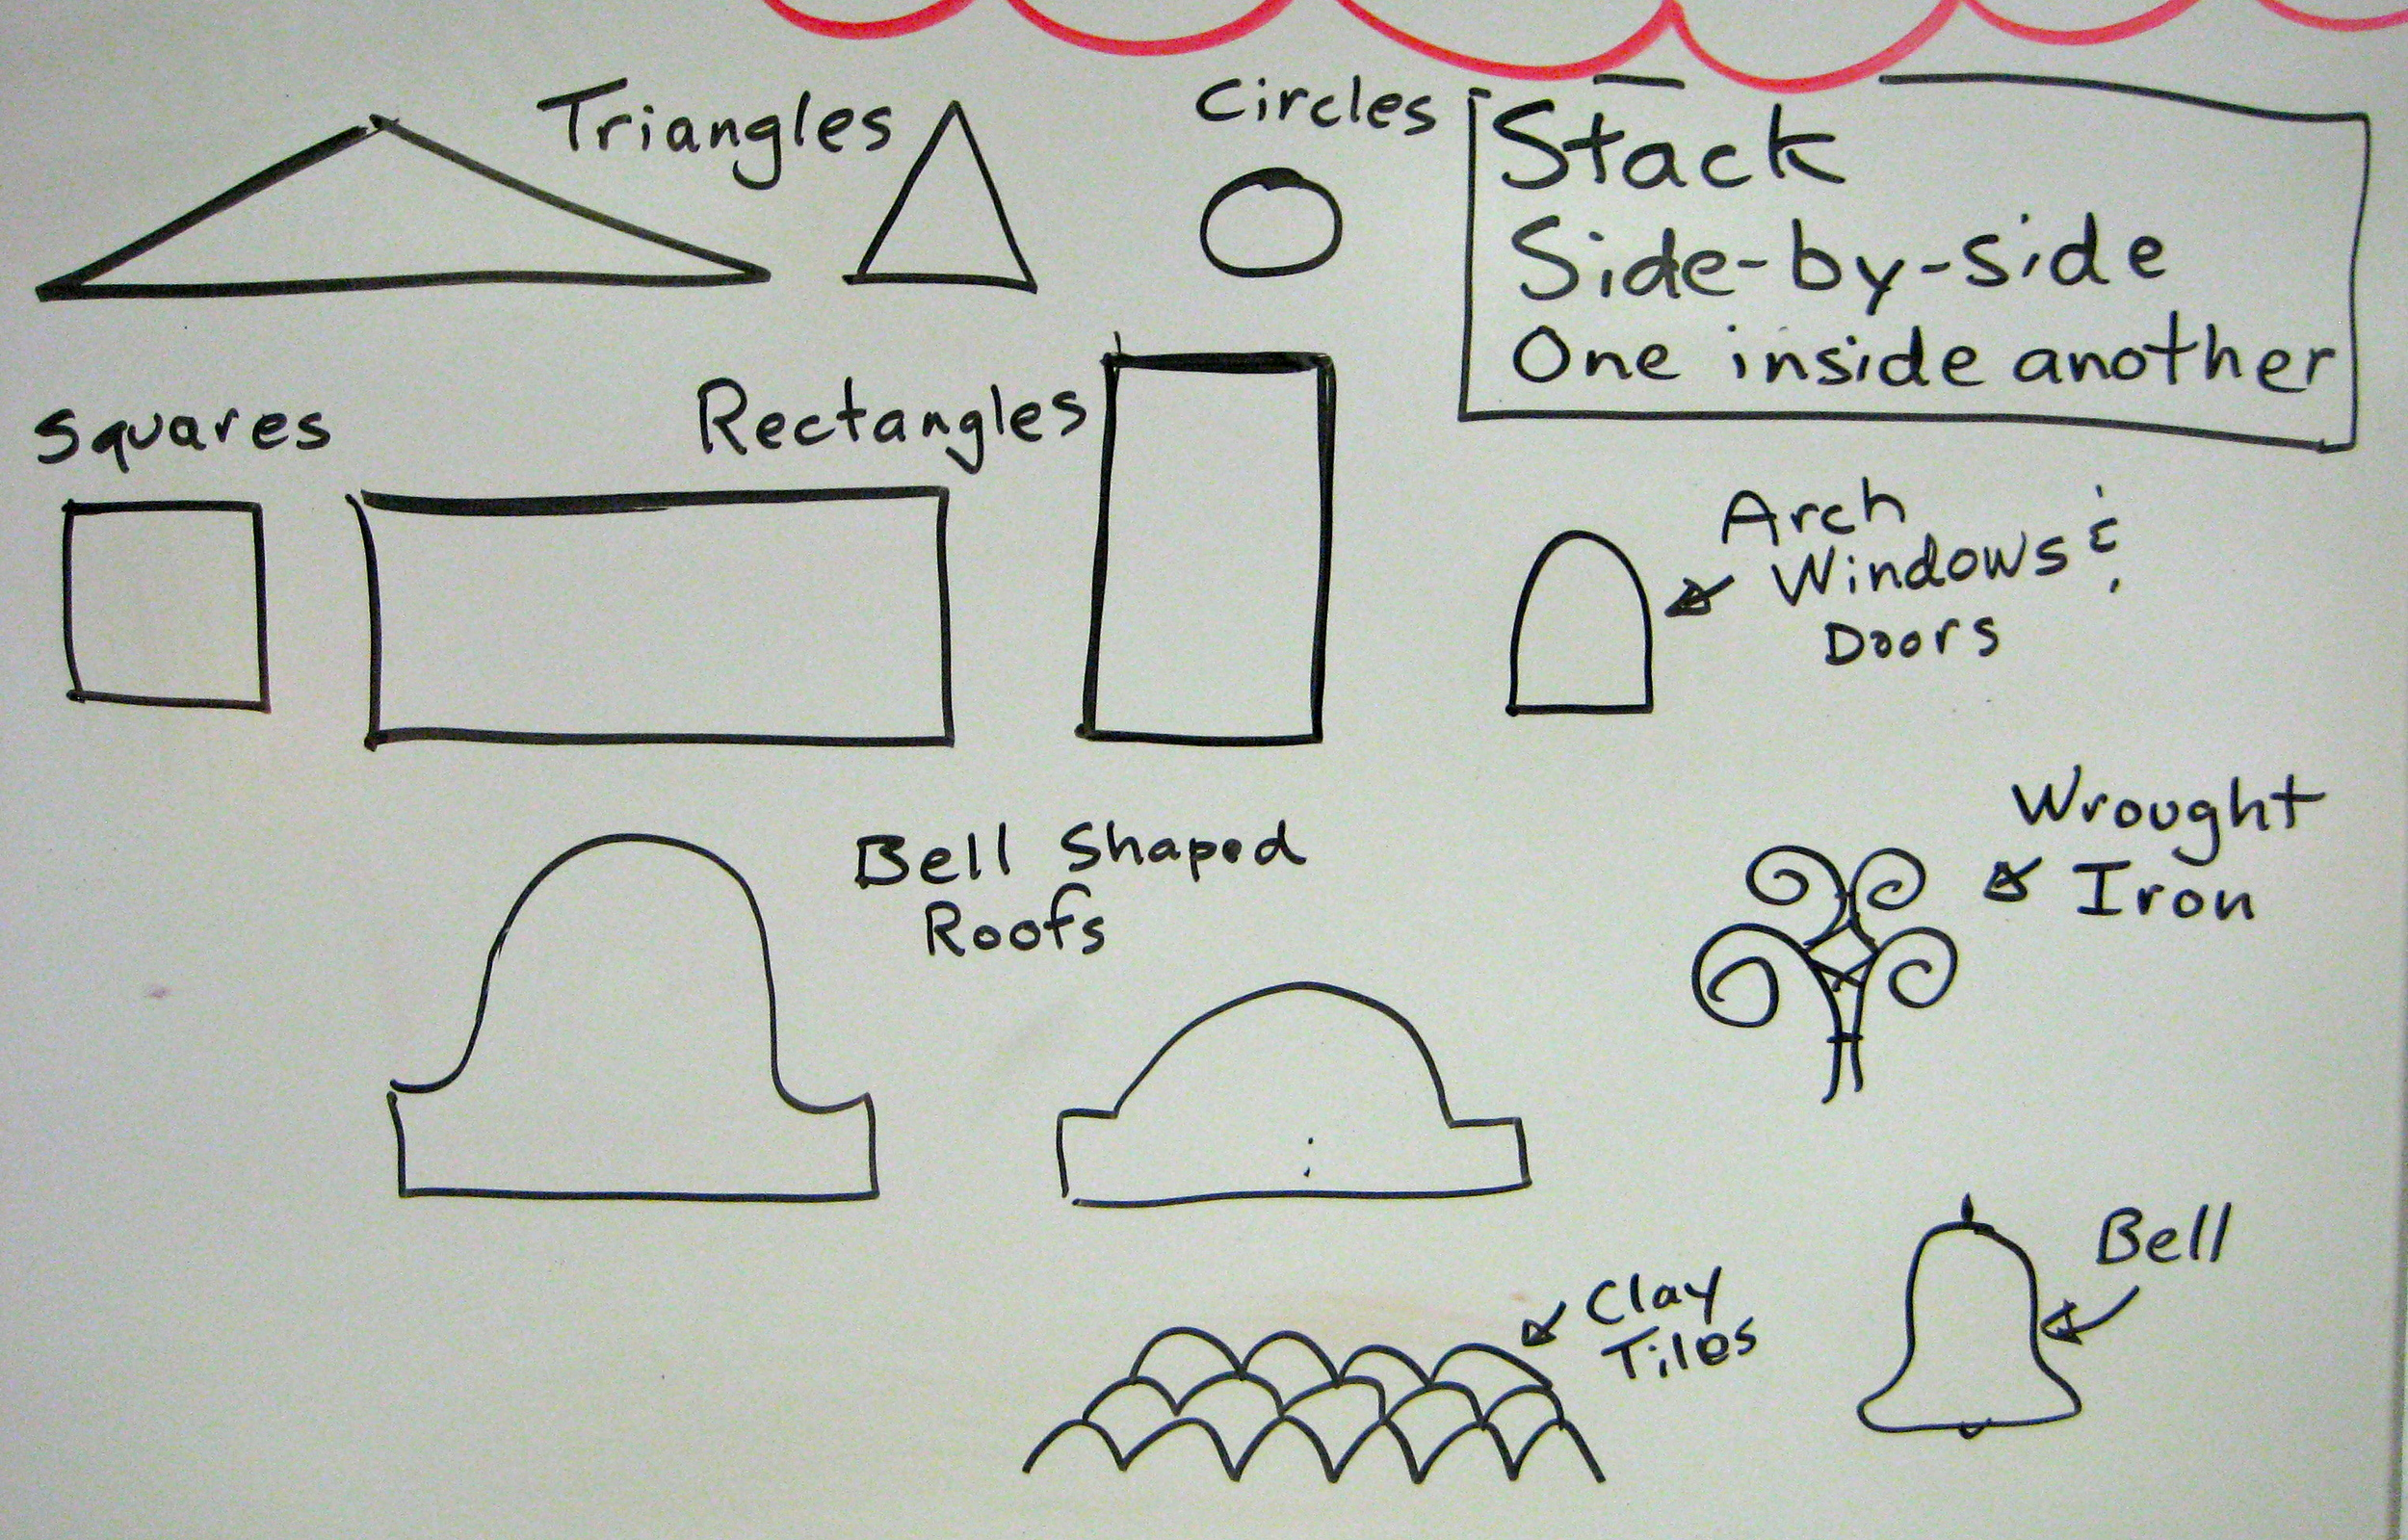 Image # 1      Basic Building Shapes  from California Missions: Ideas for how to combine the basic shapes from the missions to create a new building by  stacking, side-by-side and one shape inside another shape.